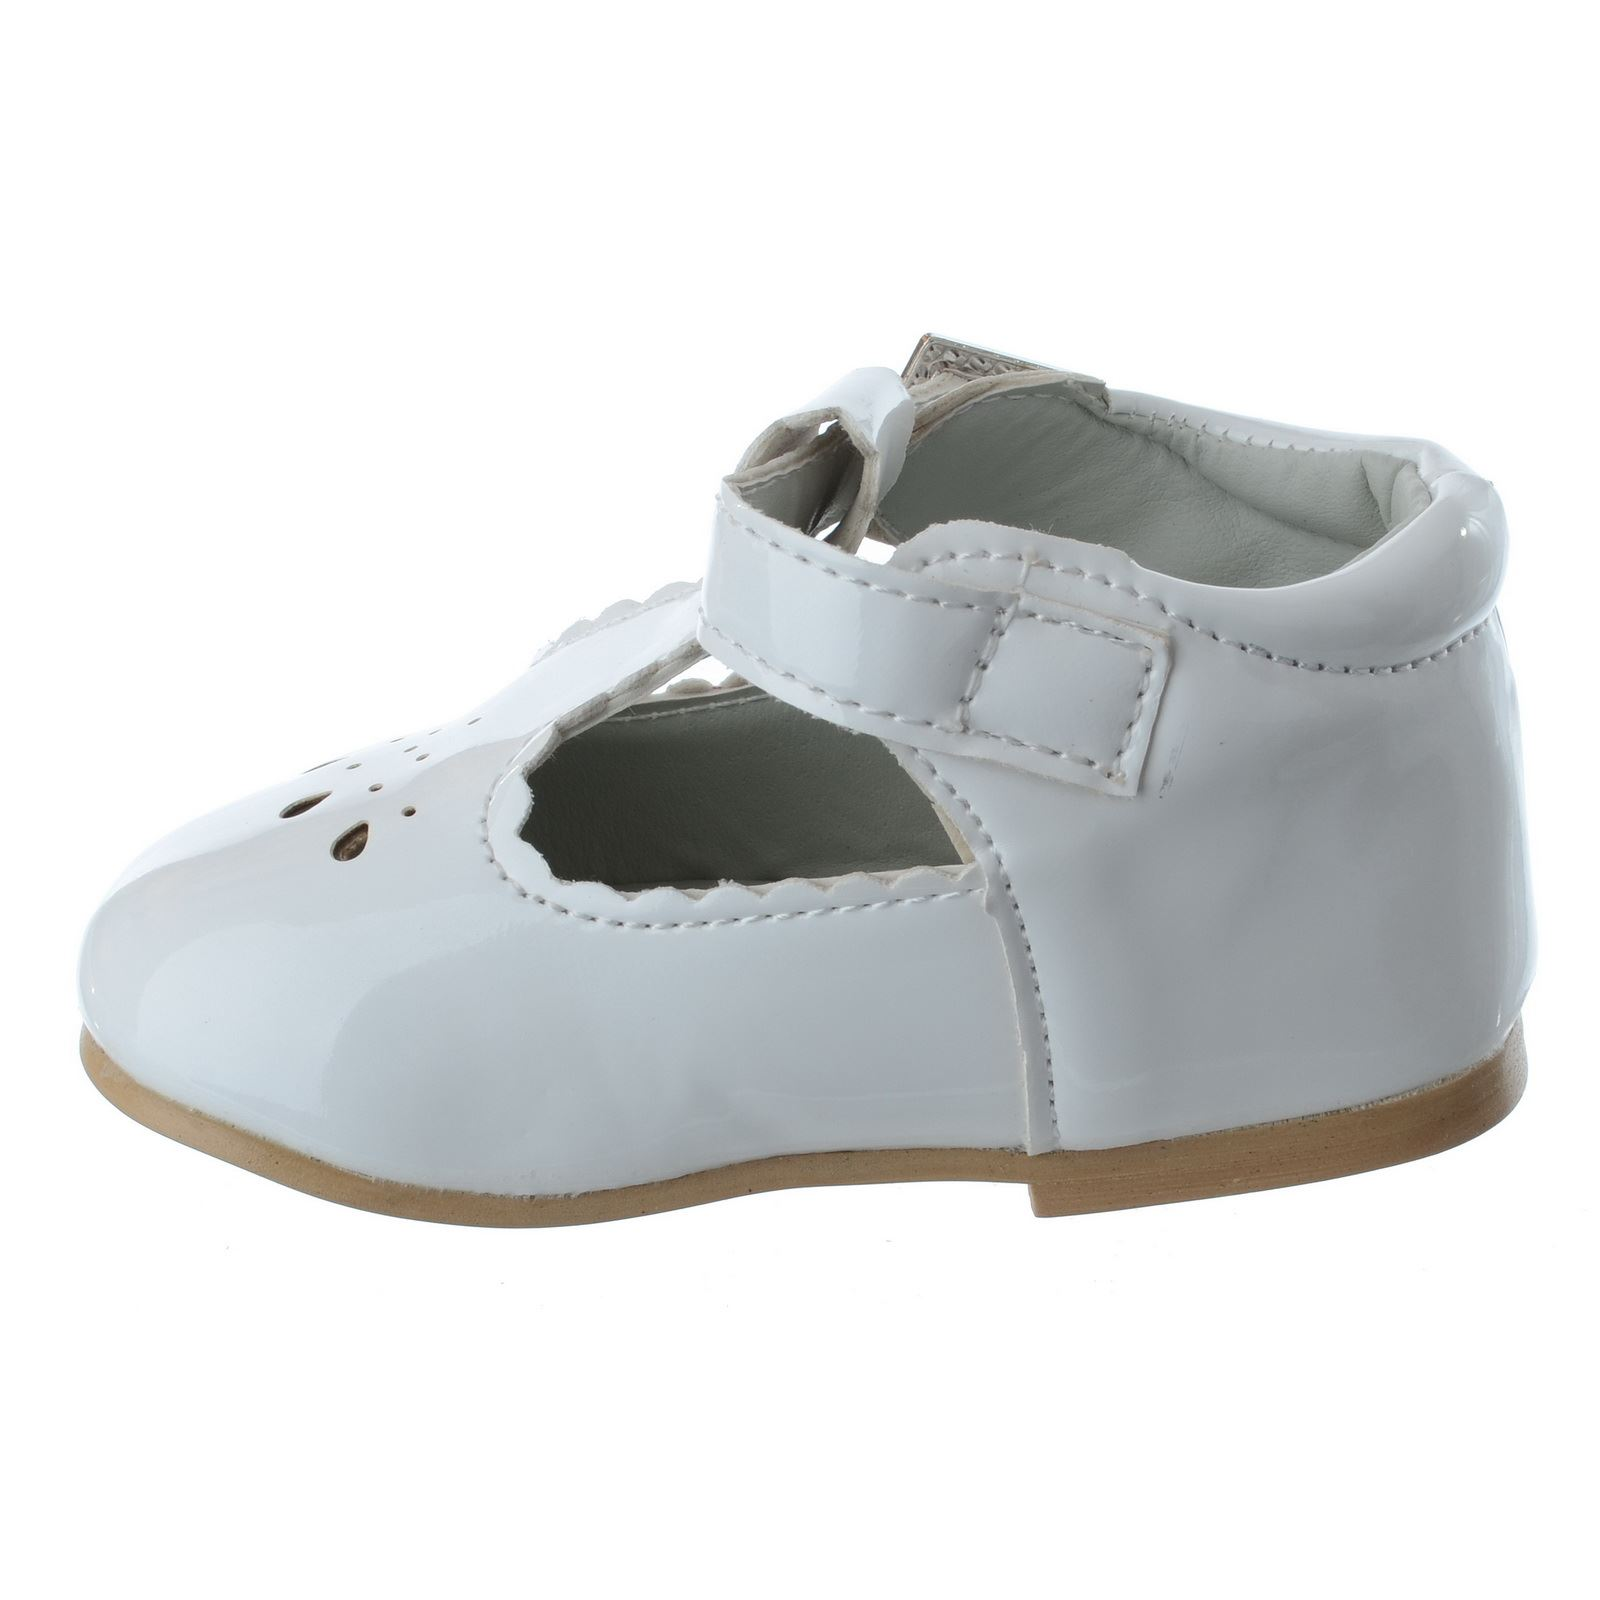 BABY GIRLS INFANTS TODDLER T BAR DIAMANTE BUCKLE PATENT FLAT KIDS